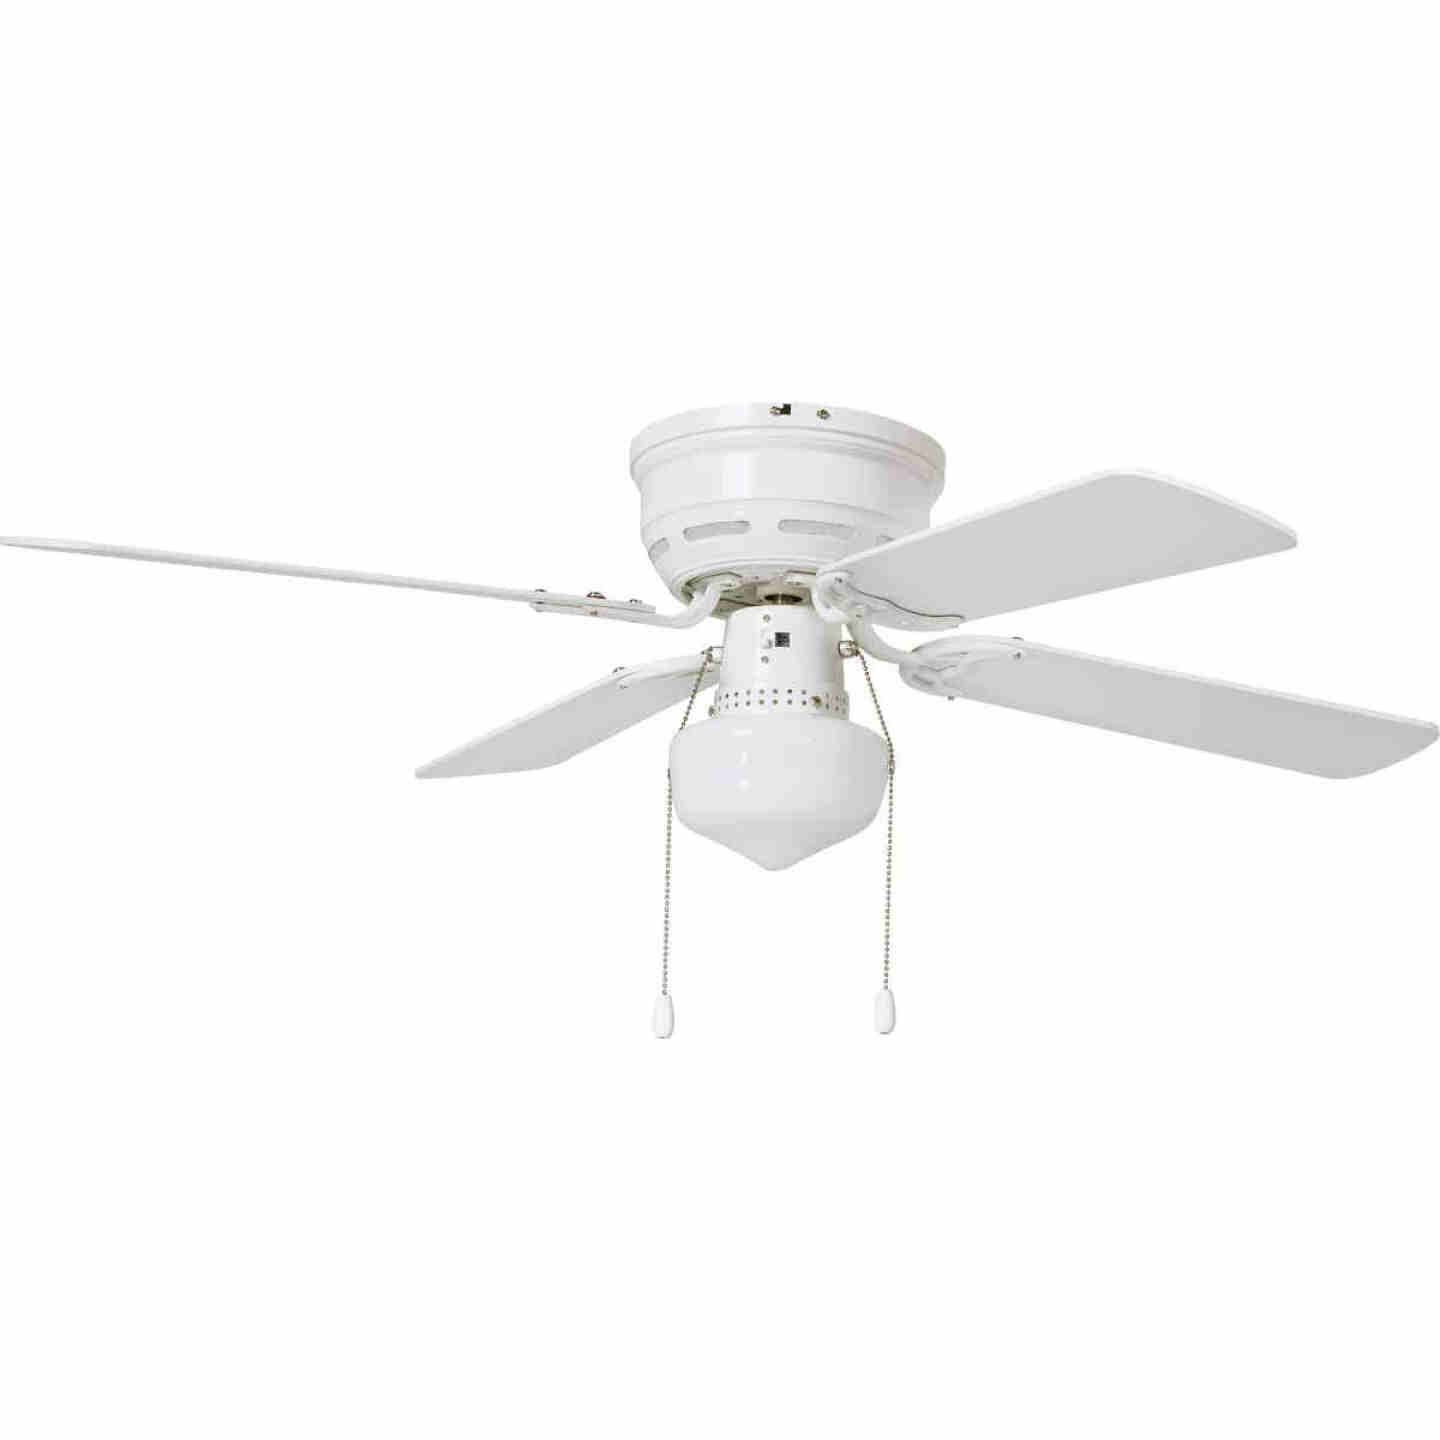 Home Impressions 42 In. White Ceiling Fan with Light Kit Image 1